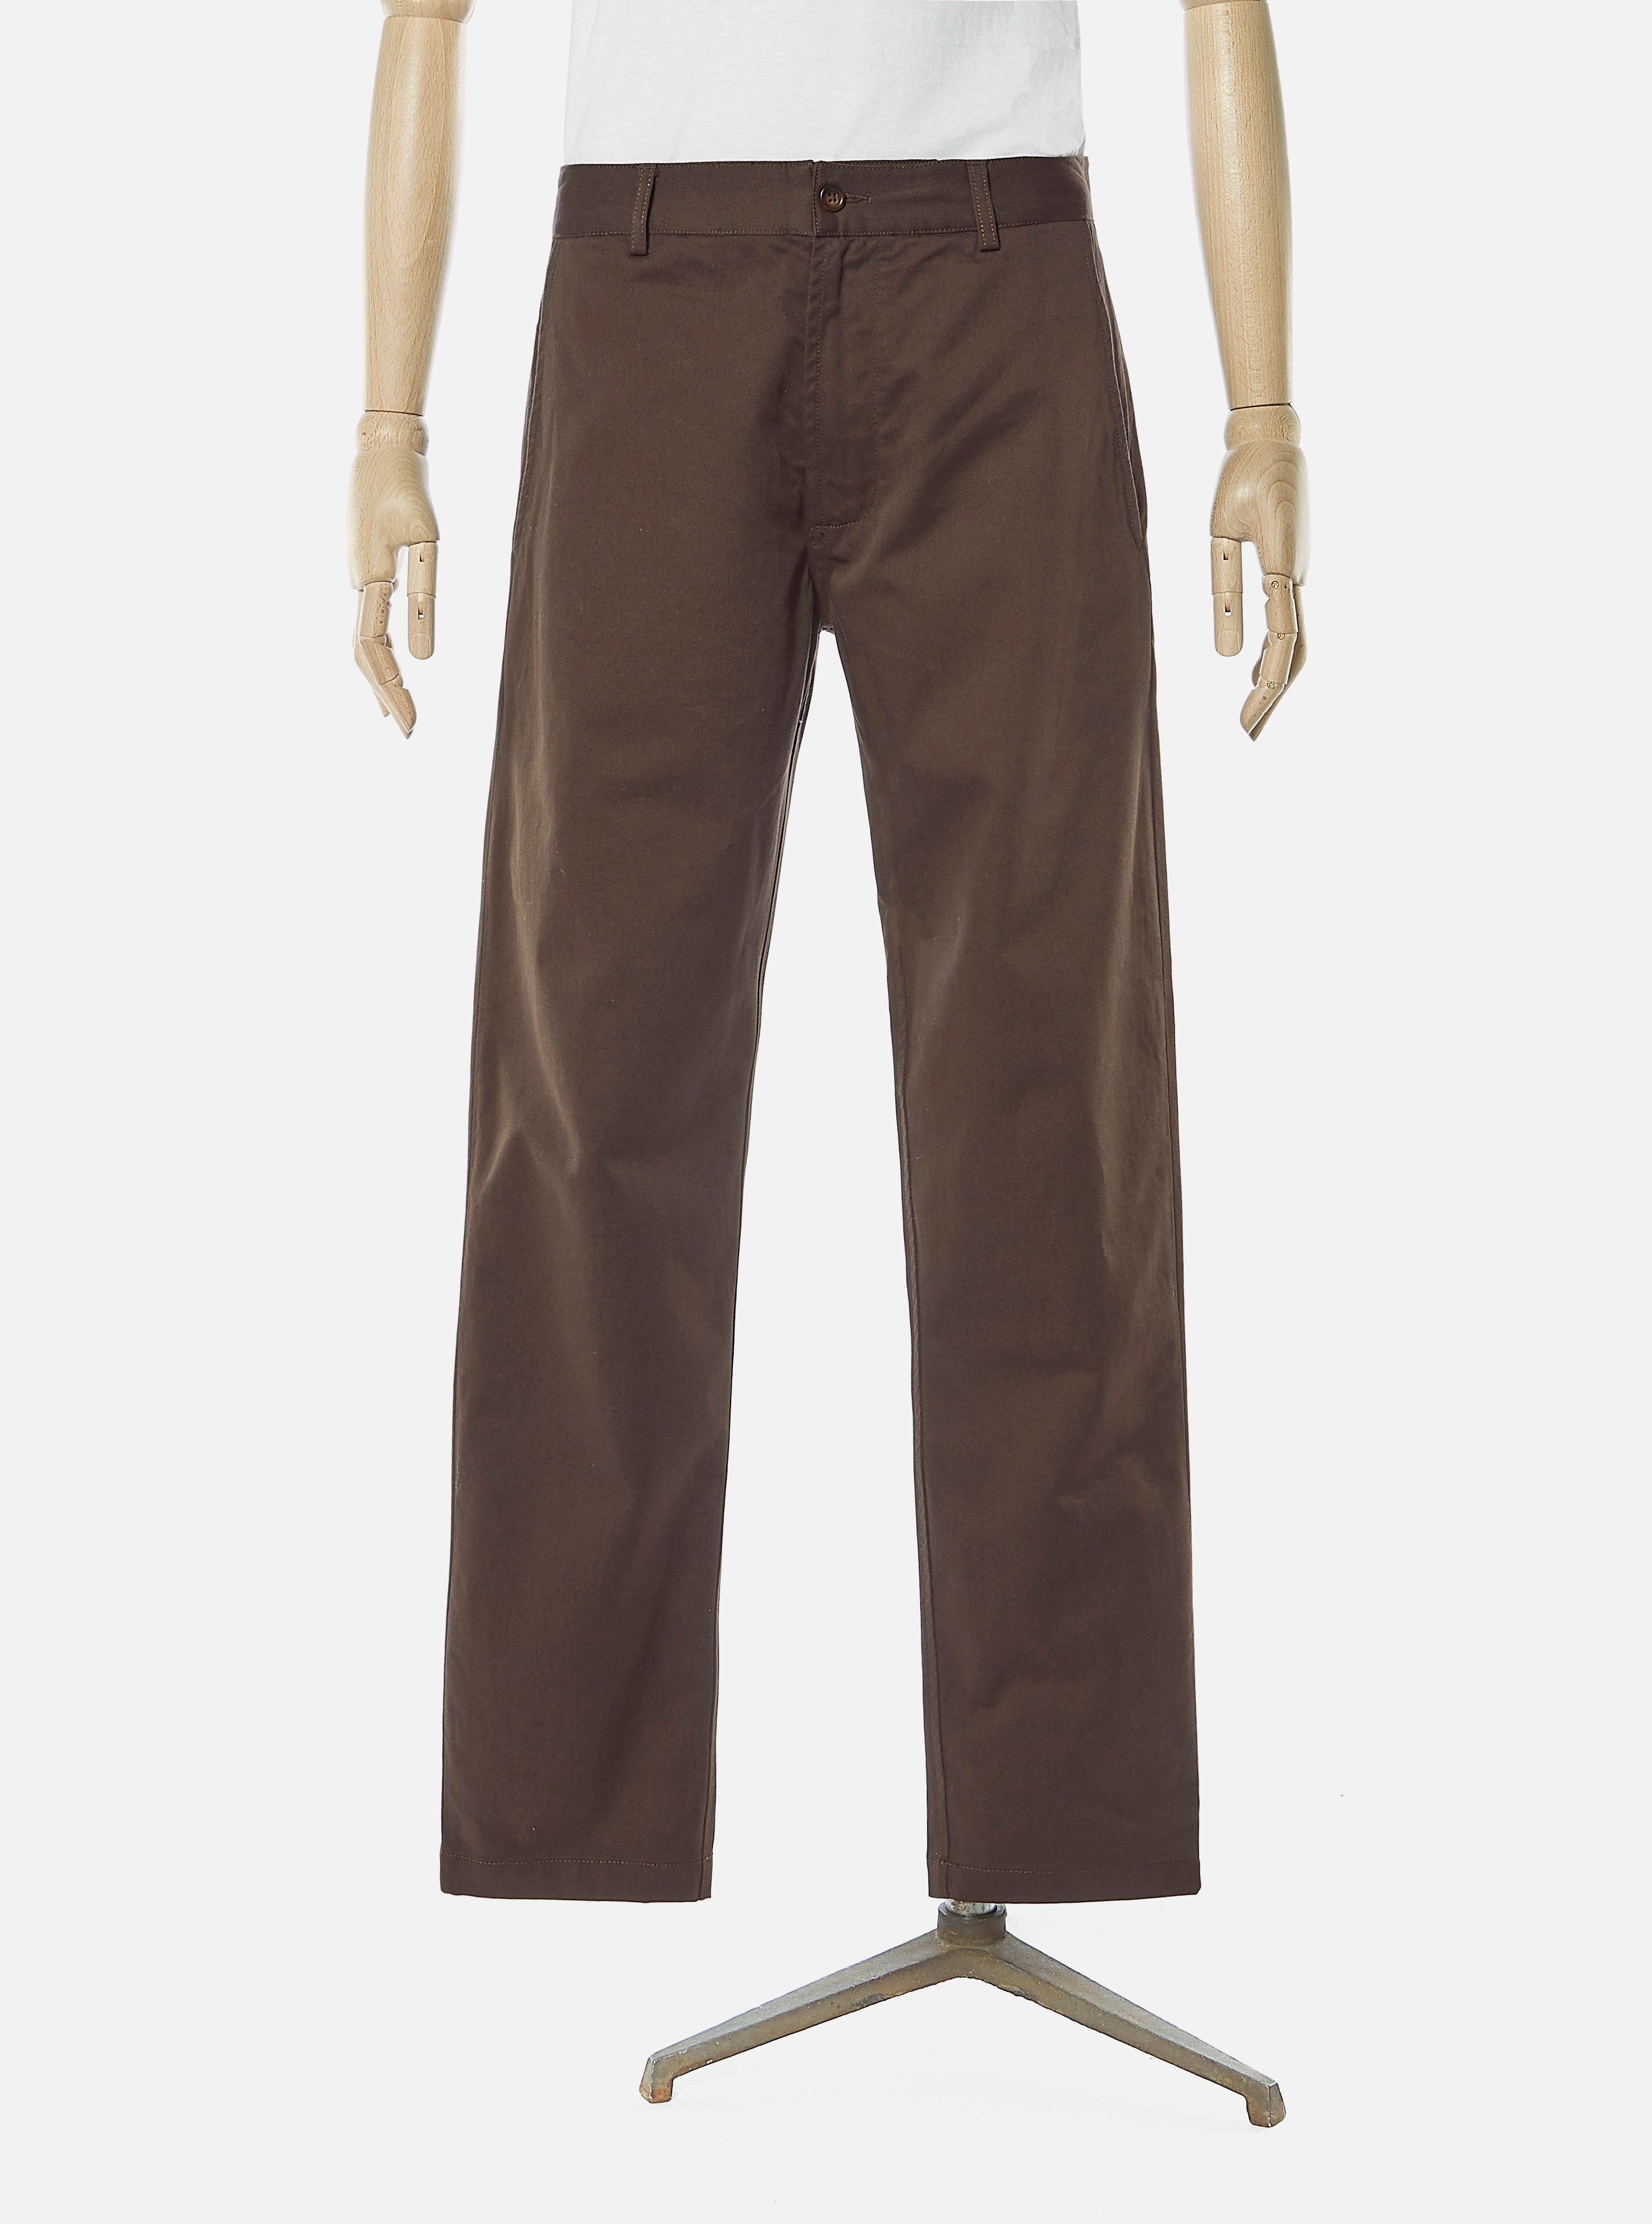 Universal Works Aston Pant in Chocolate Twill